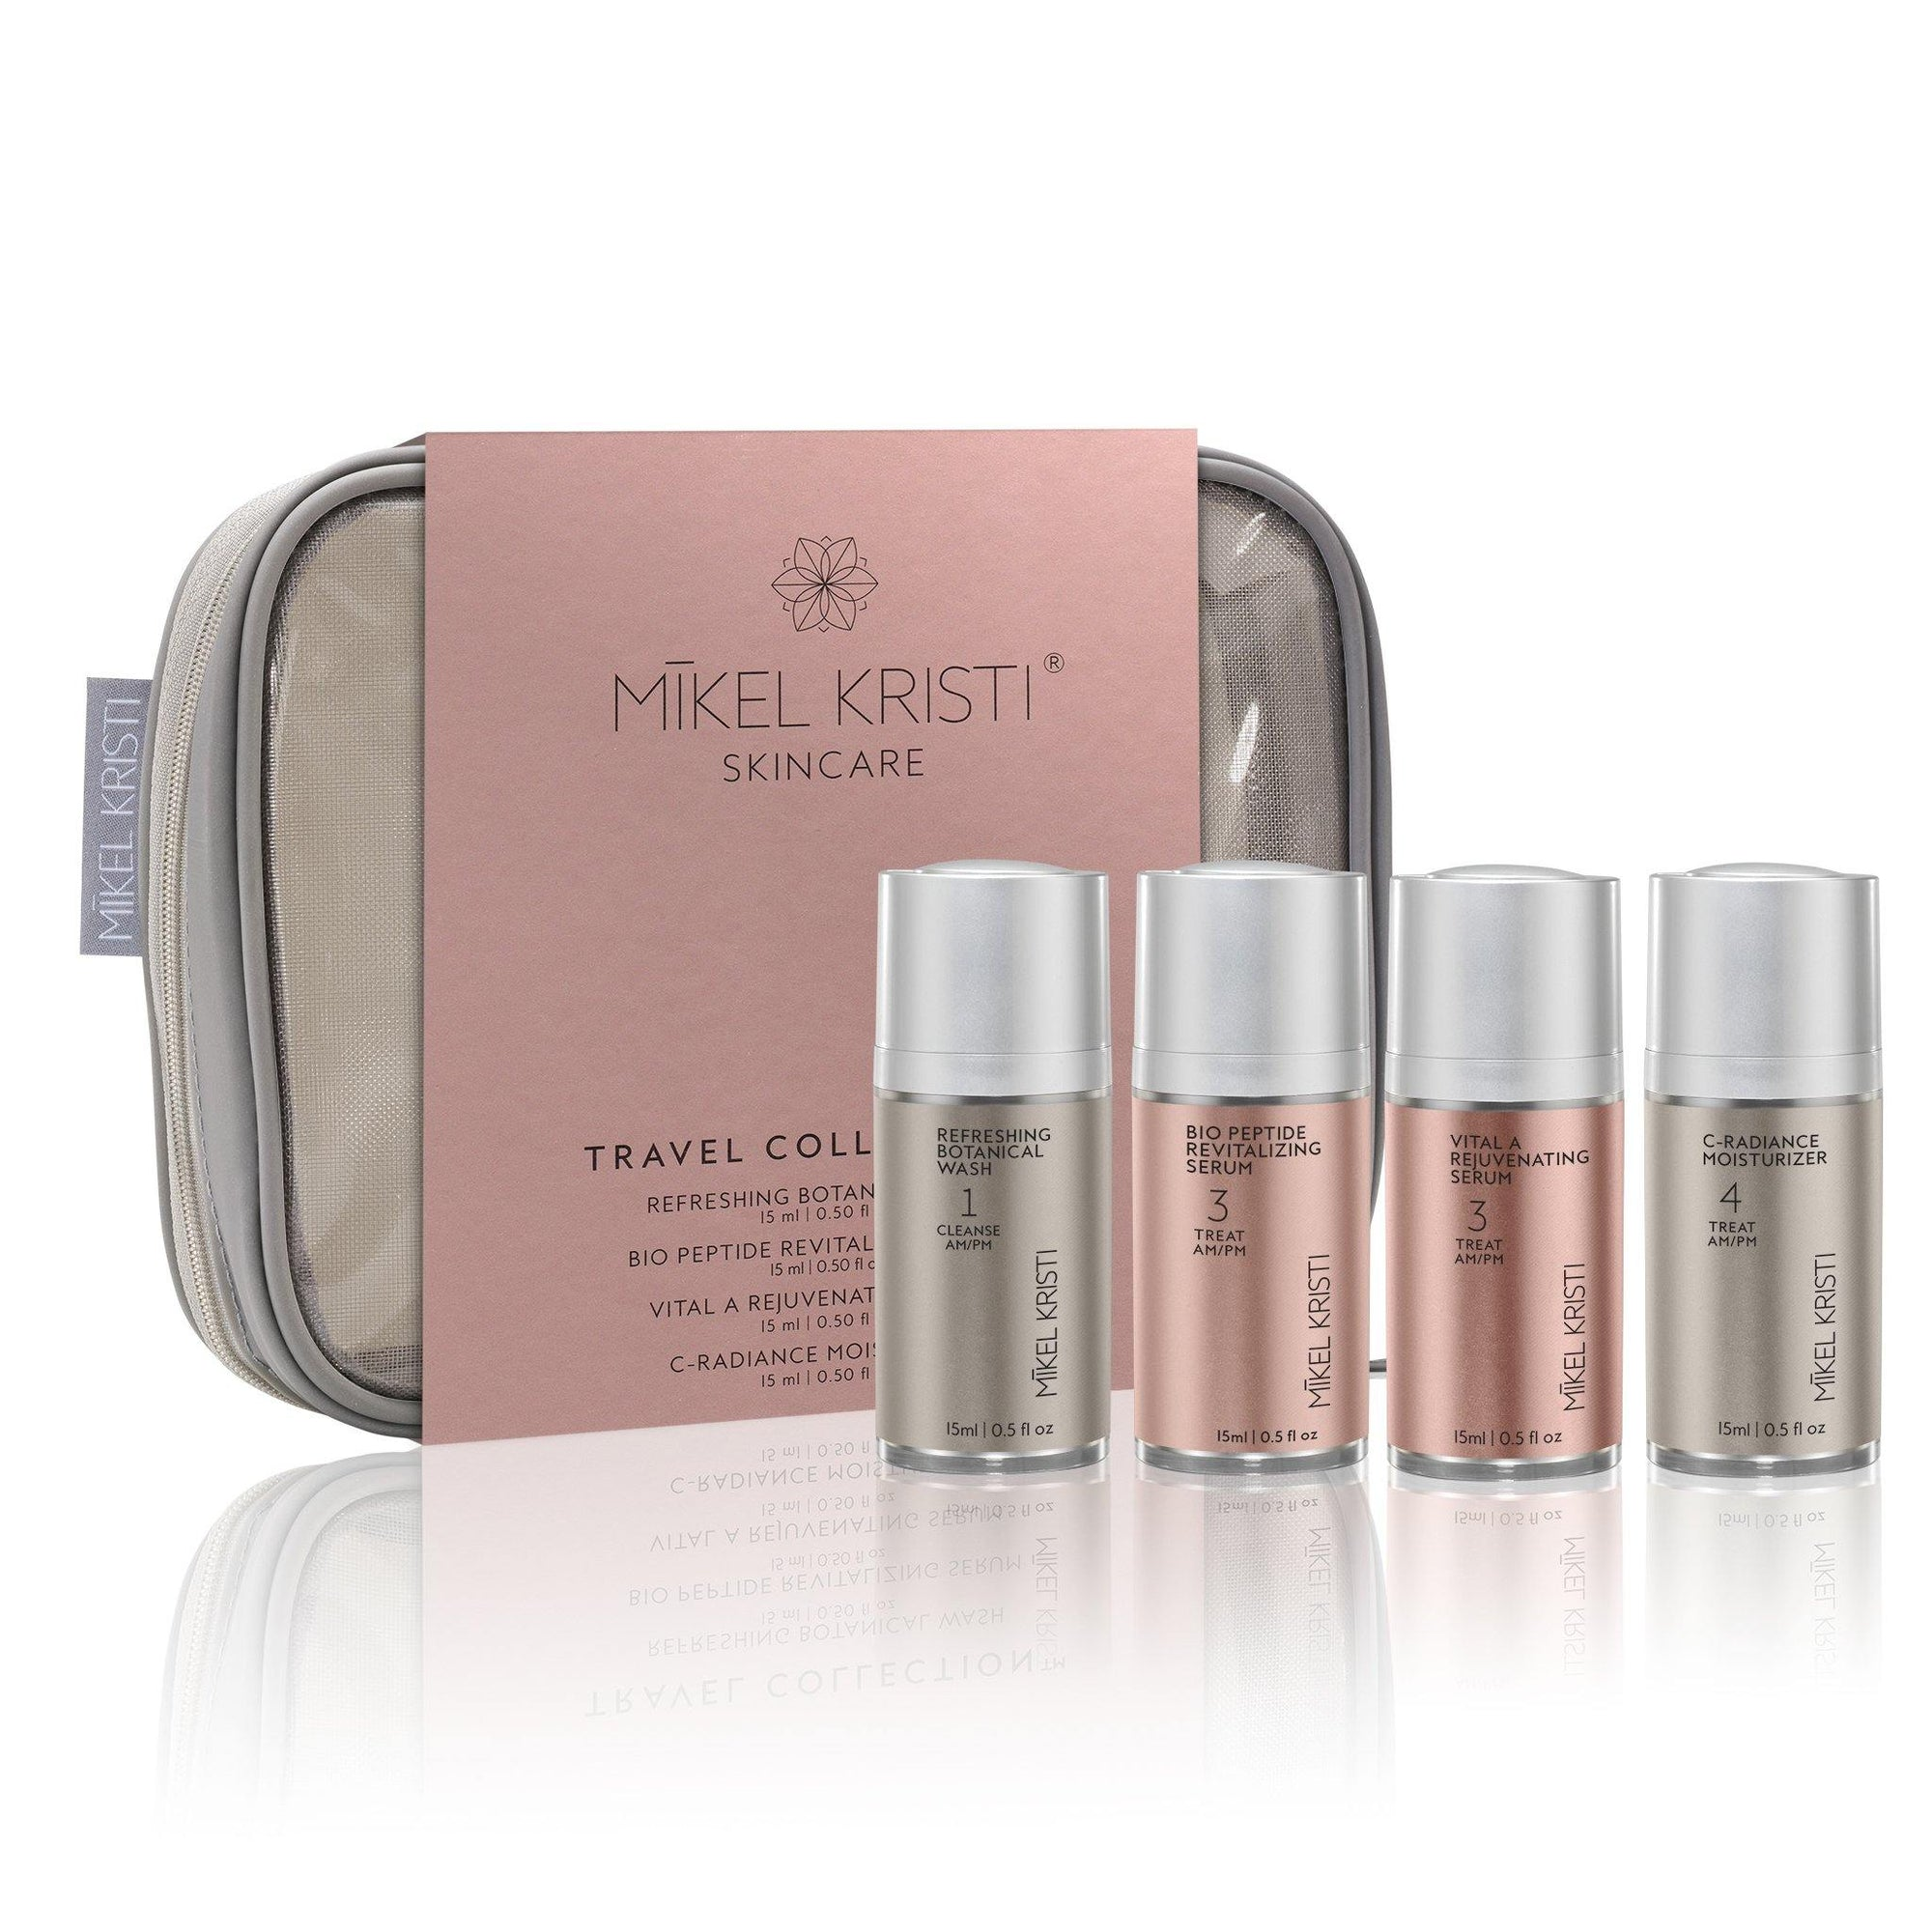 Travel Collection by Mikel Kristi in gray, TSA ready travel toiletry bag, facial wash, 2 serums, and moisturizer